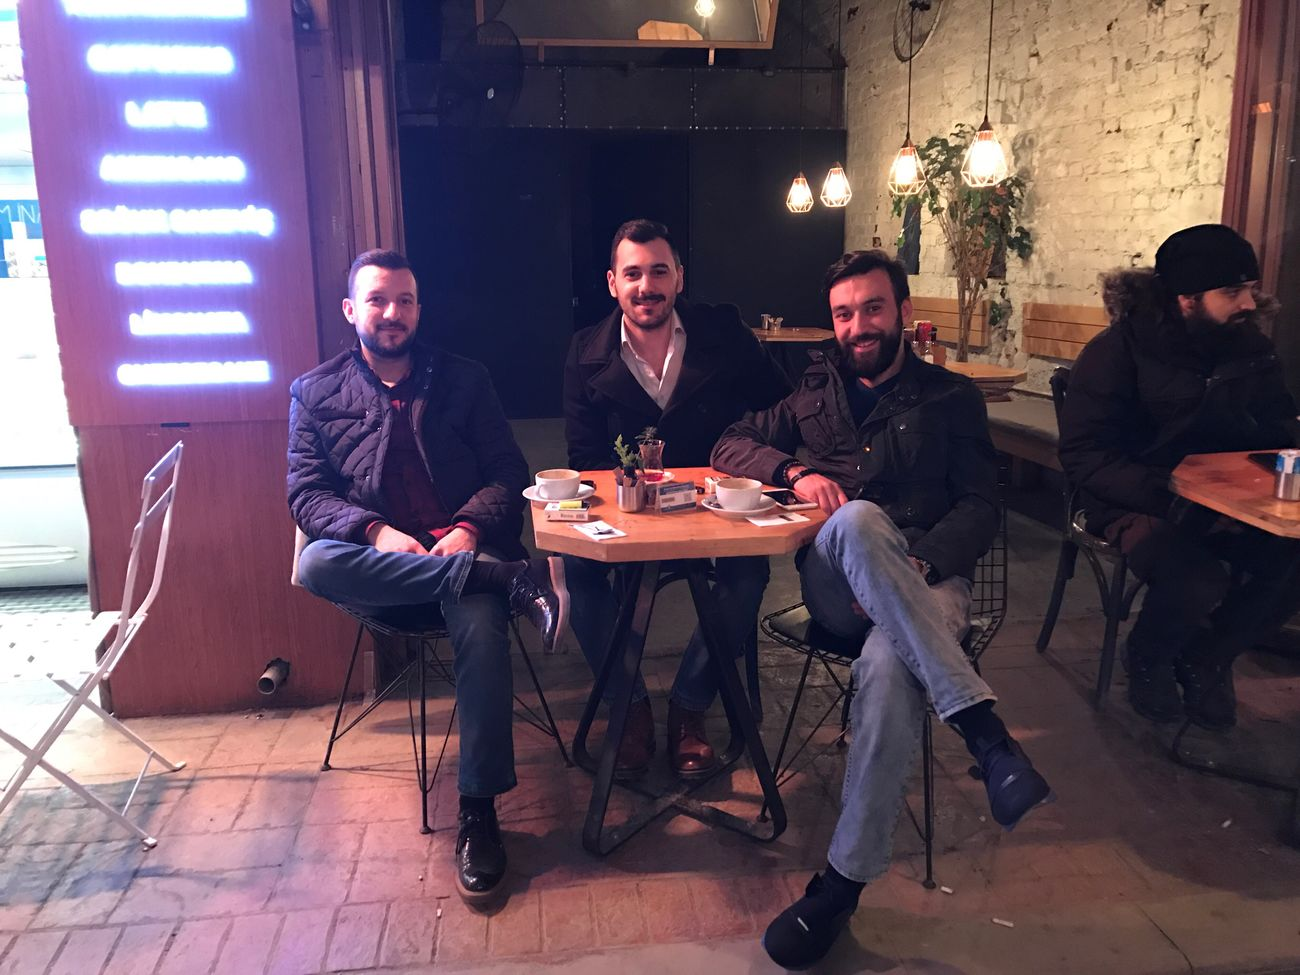 Friends Istanbul Only Men Night Friendship Happiness Men Looking At Camera People Table